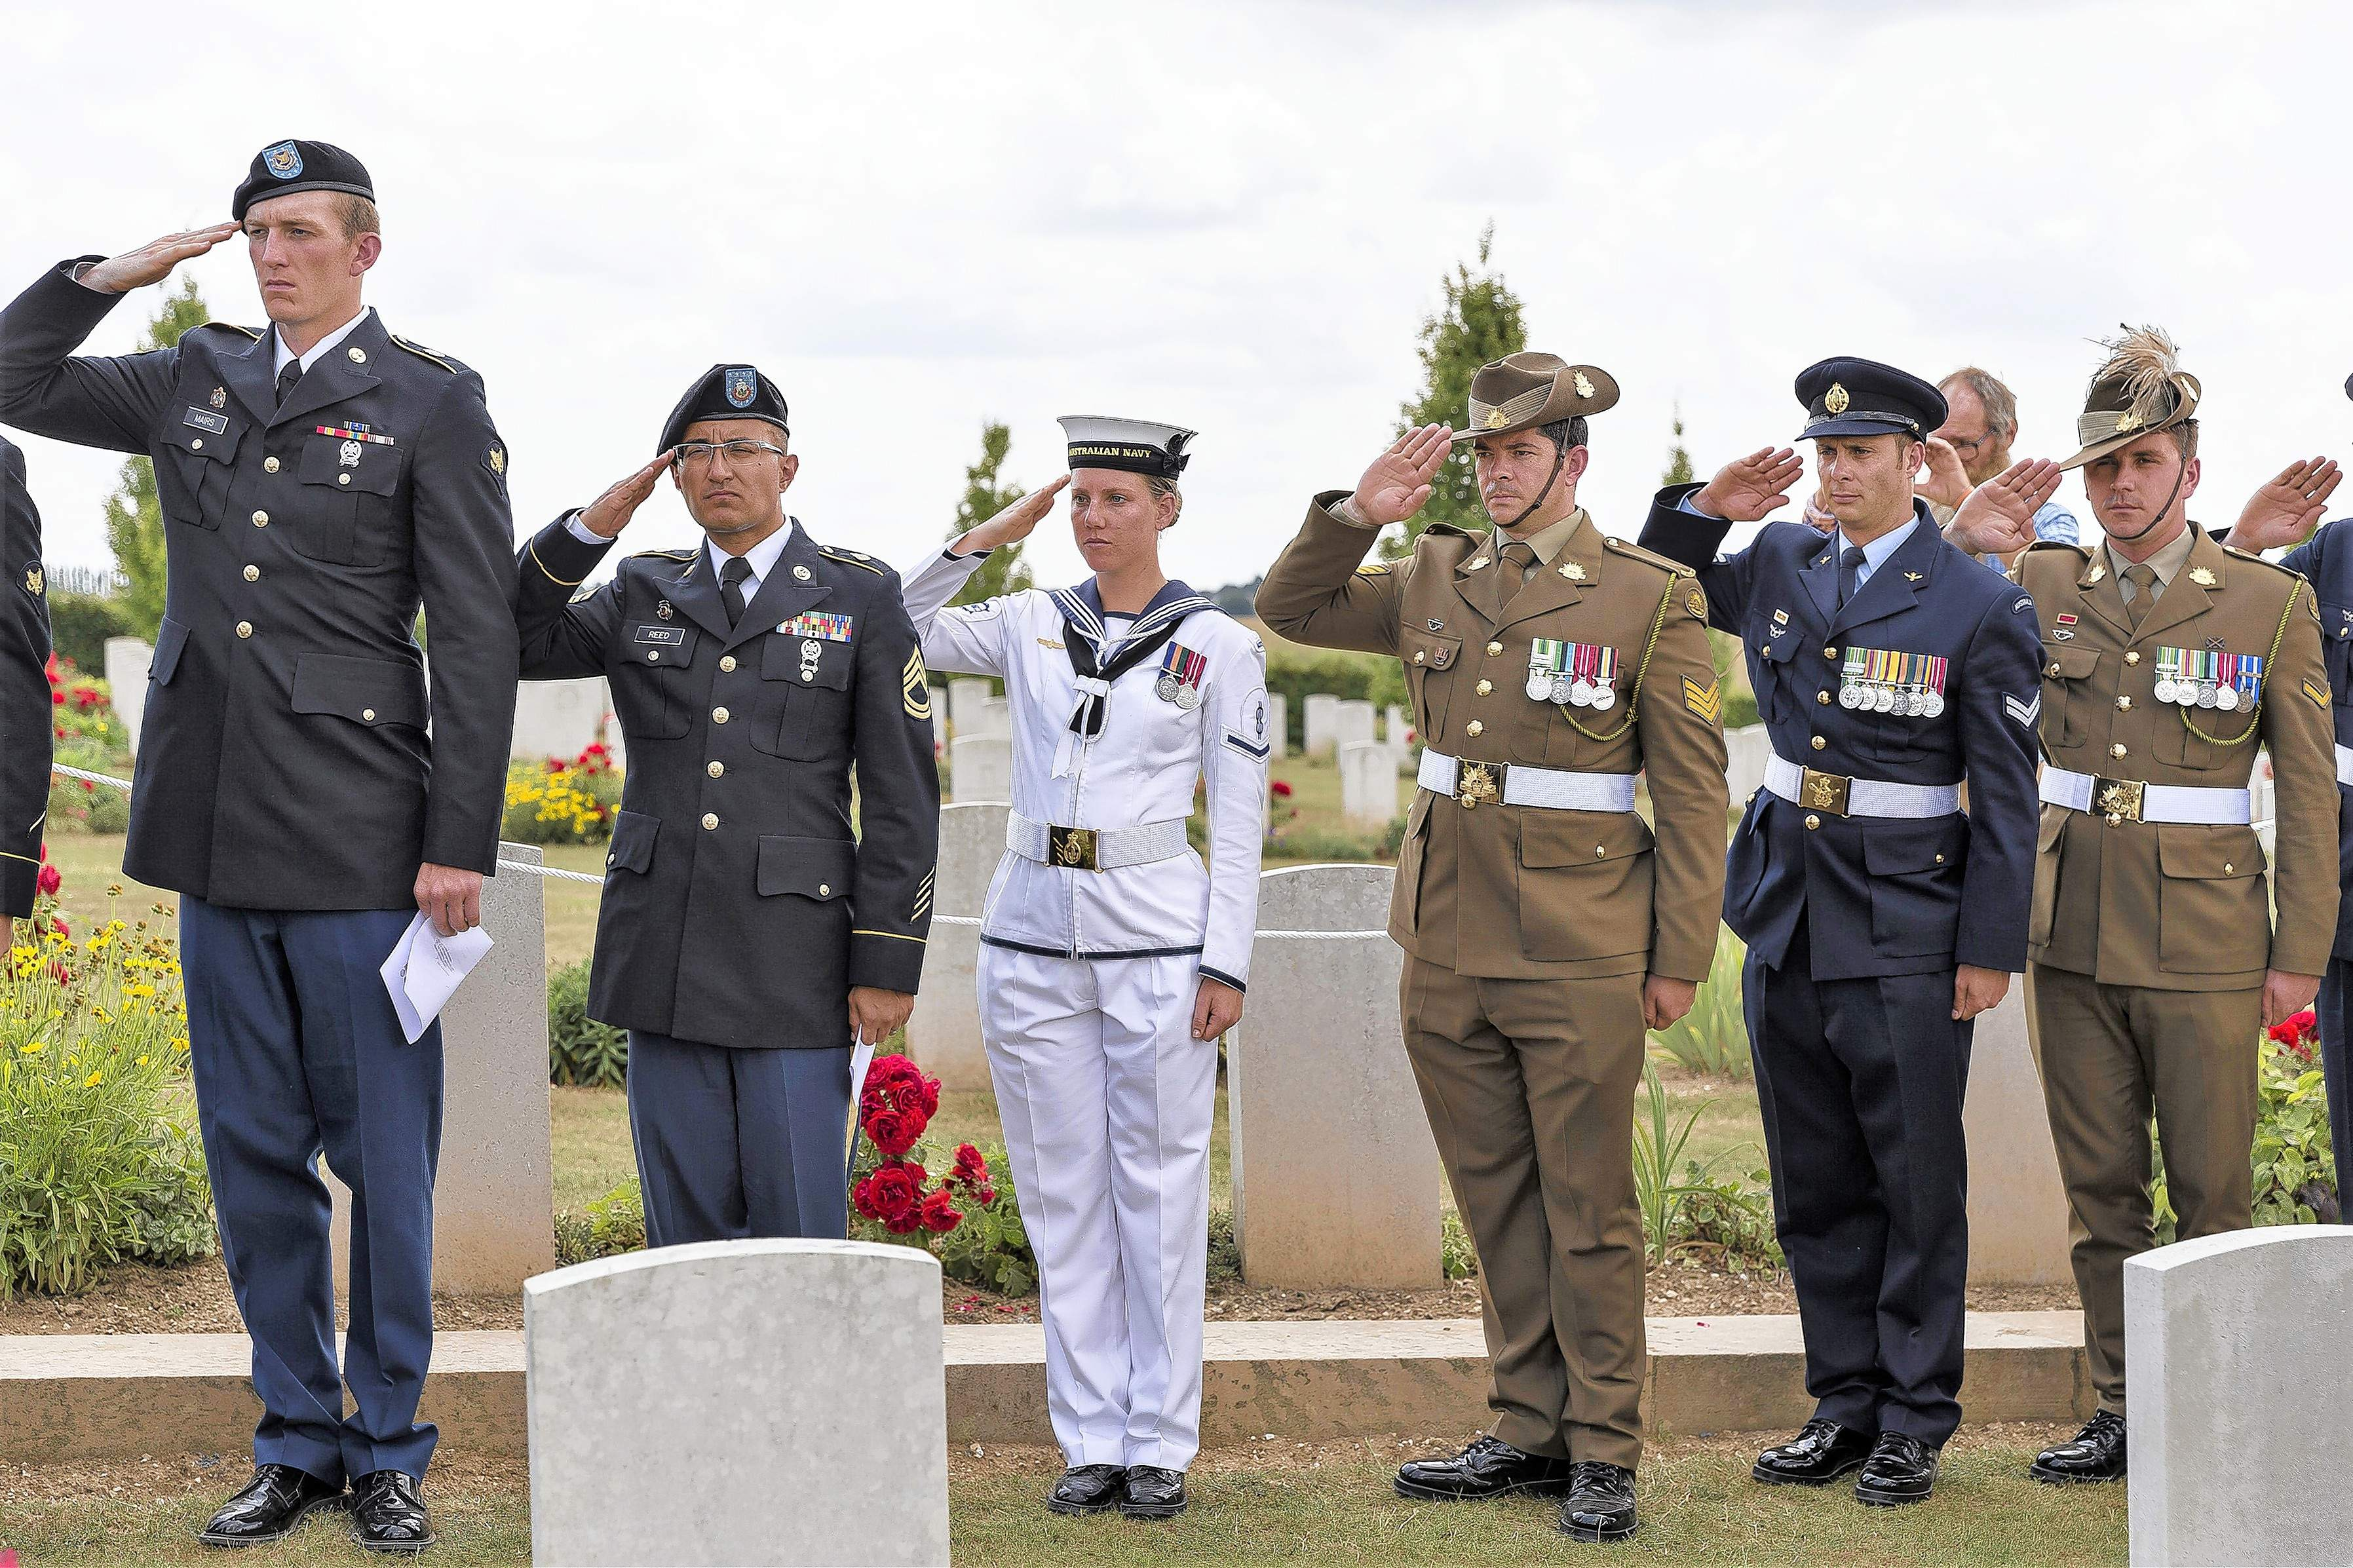 The Illinois Army National Guard's Spc. Troy Mairs of Ashton, left, and Sgt. 1st Class Robert Reed of Sparta salute with Australian service members during a headstone rededication conducted for Australian Army Private Robert Bowness on July 4, 2018, at Villers-Bretonneux Cemetery in France. Bowness, a member of Australia's 4th Pioneer Battalion, was killed on the Western Front 100 years ago